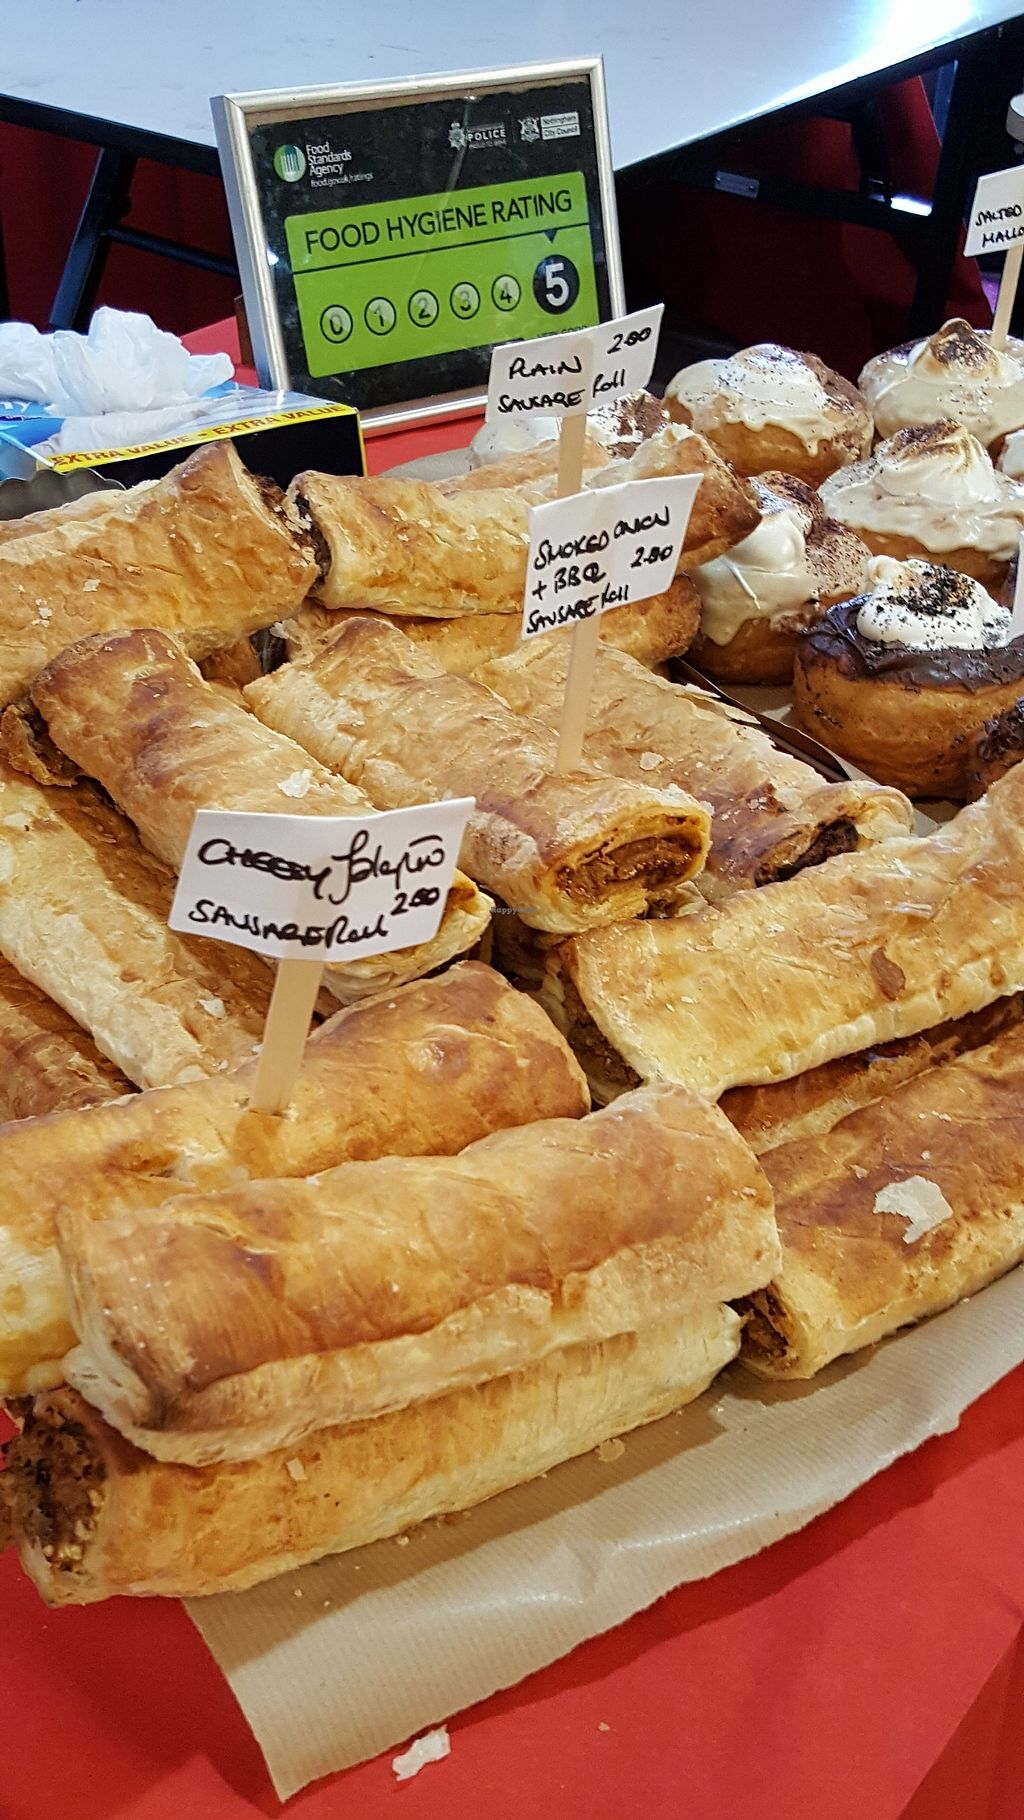 """Photo of VeganJunk  by <a href=""""/members/profile/Clare"""">Clare</a> <br/>'Sausage' rolls <br/> November 12, 2017  - <a href='/contact/abuse/image/104930/324866'>Report</a>"""